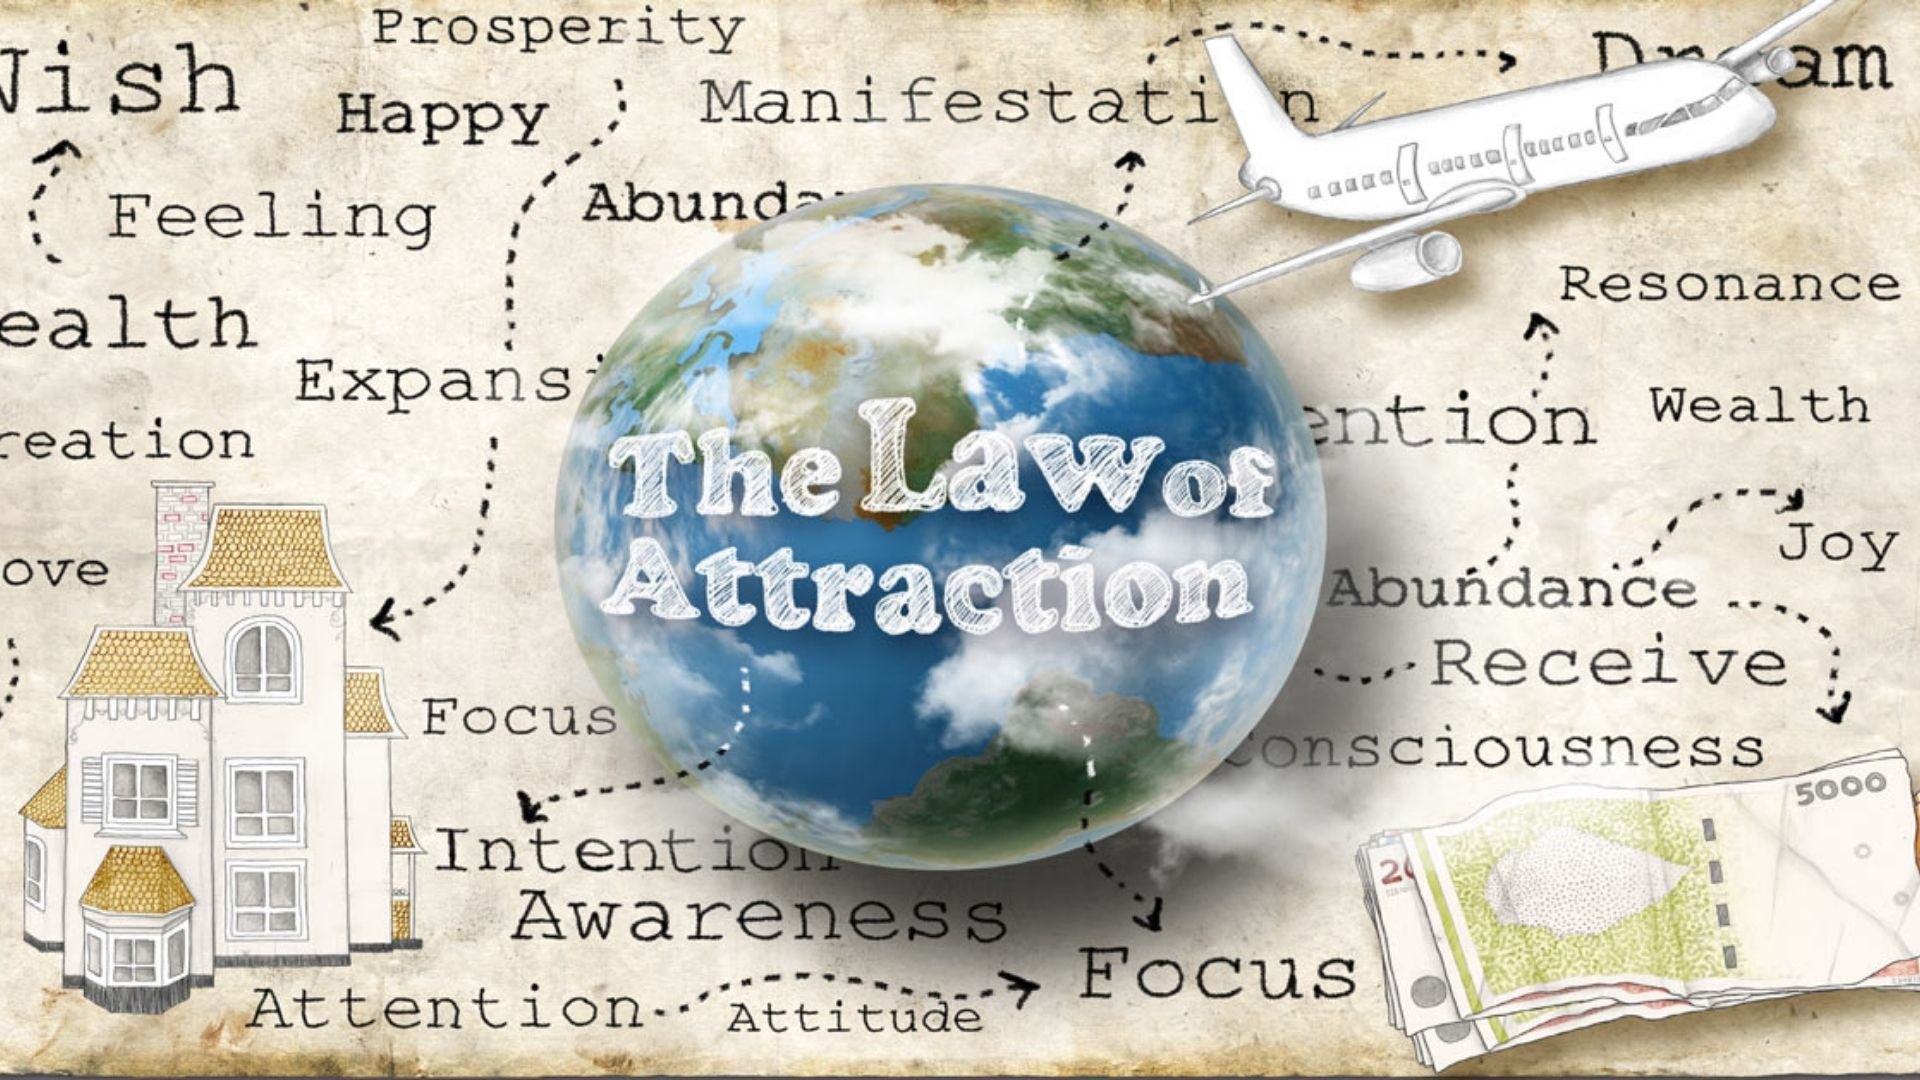 How to use the law of attraction to cure serious diseases